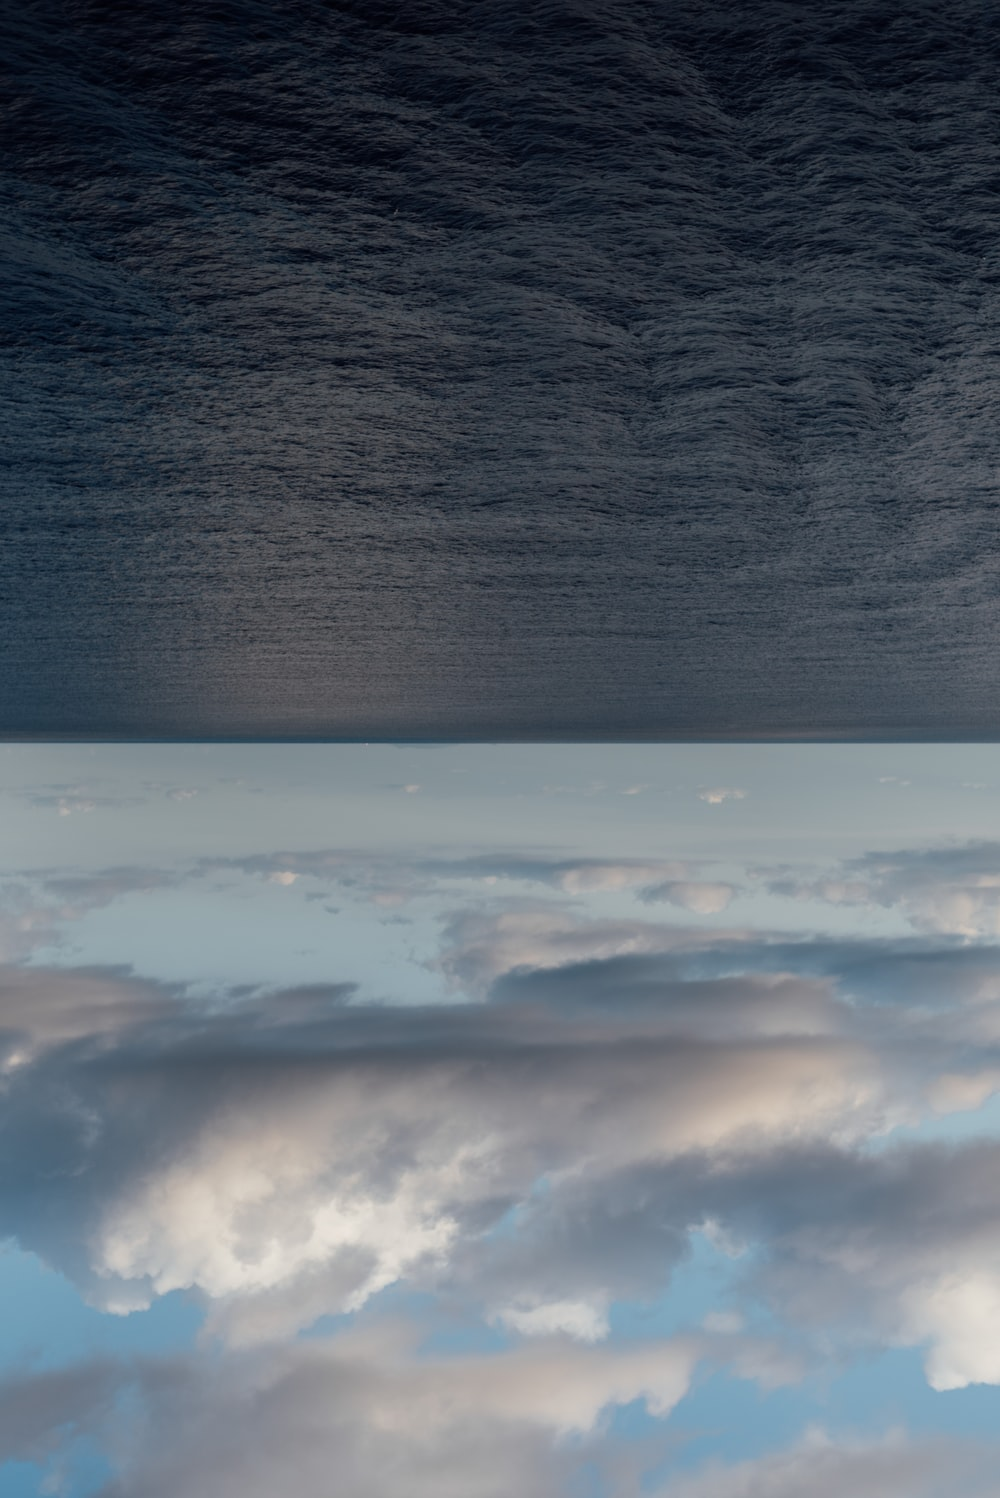 white clouds over body of water